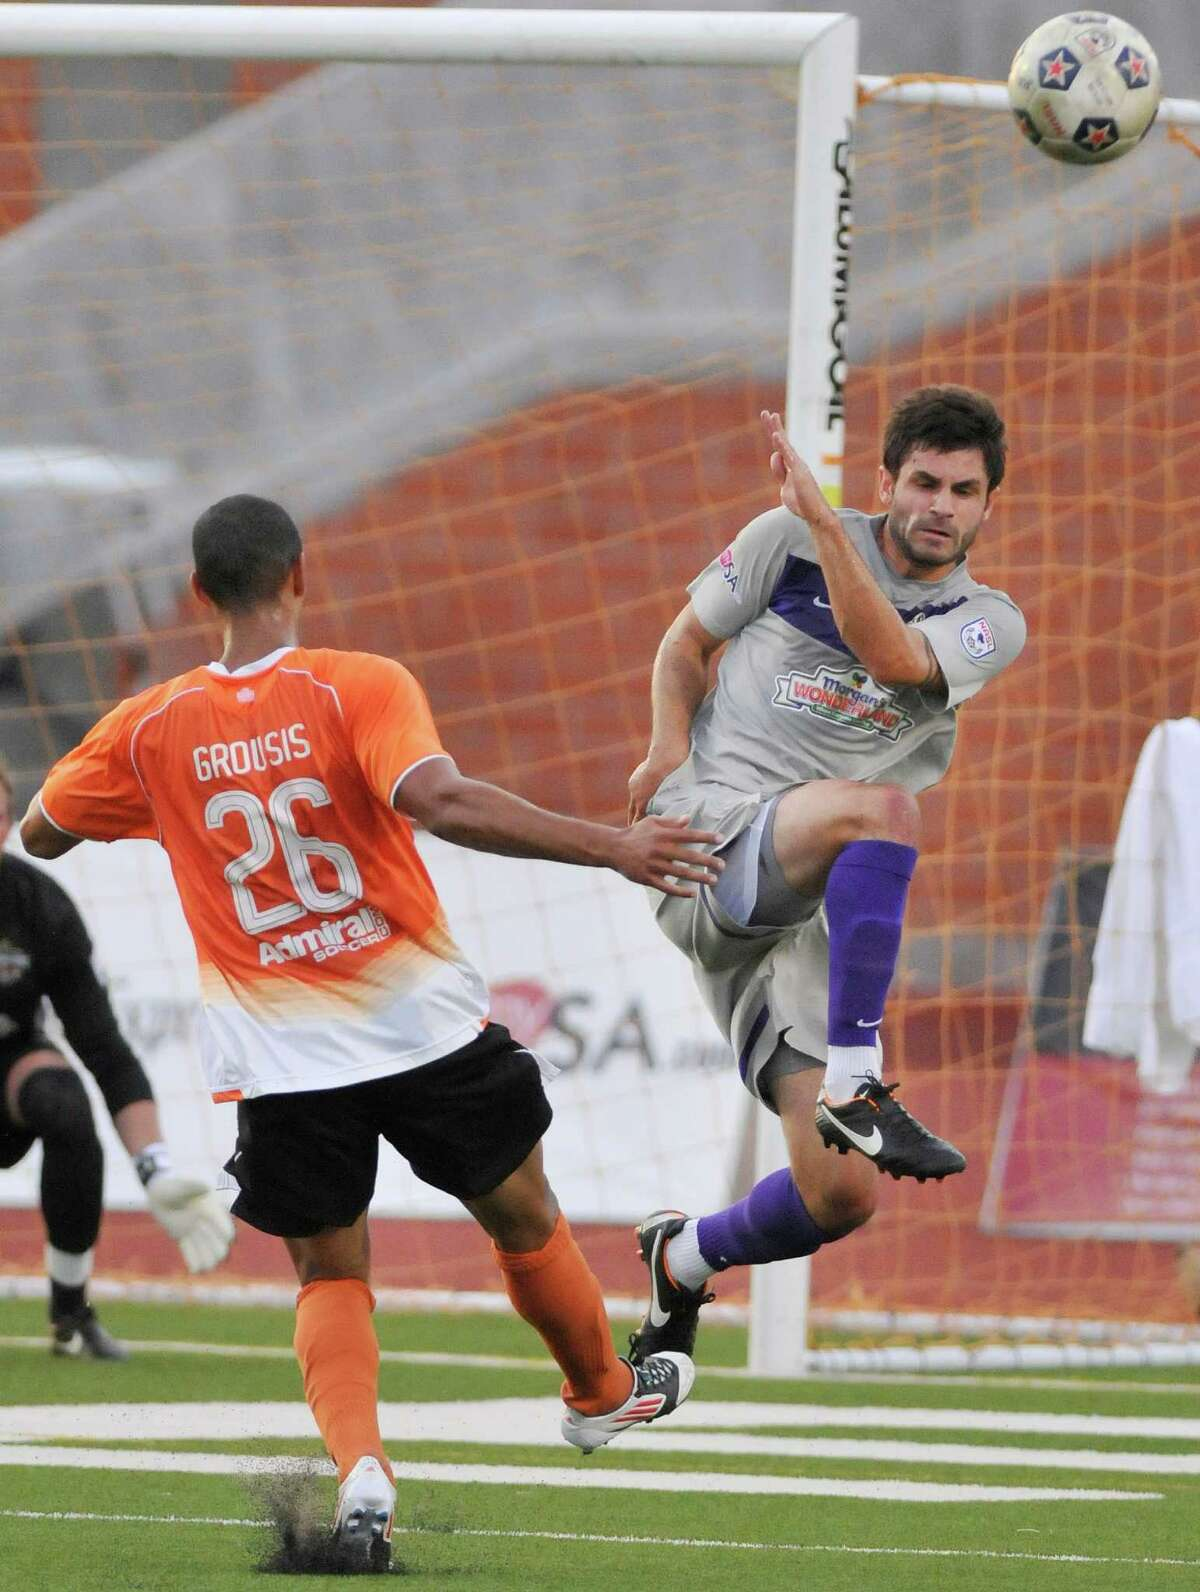 The Scorpions' Blake Wagner, right, defends against Charlotte's Devon Grousis during a U.S. Open Cup soccer match, Tuesday, June 5, 2012, at Heroes Stadium.